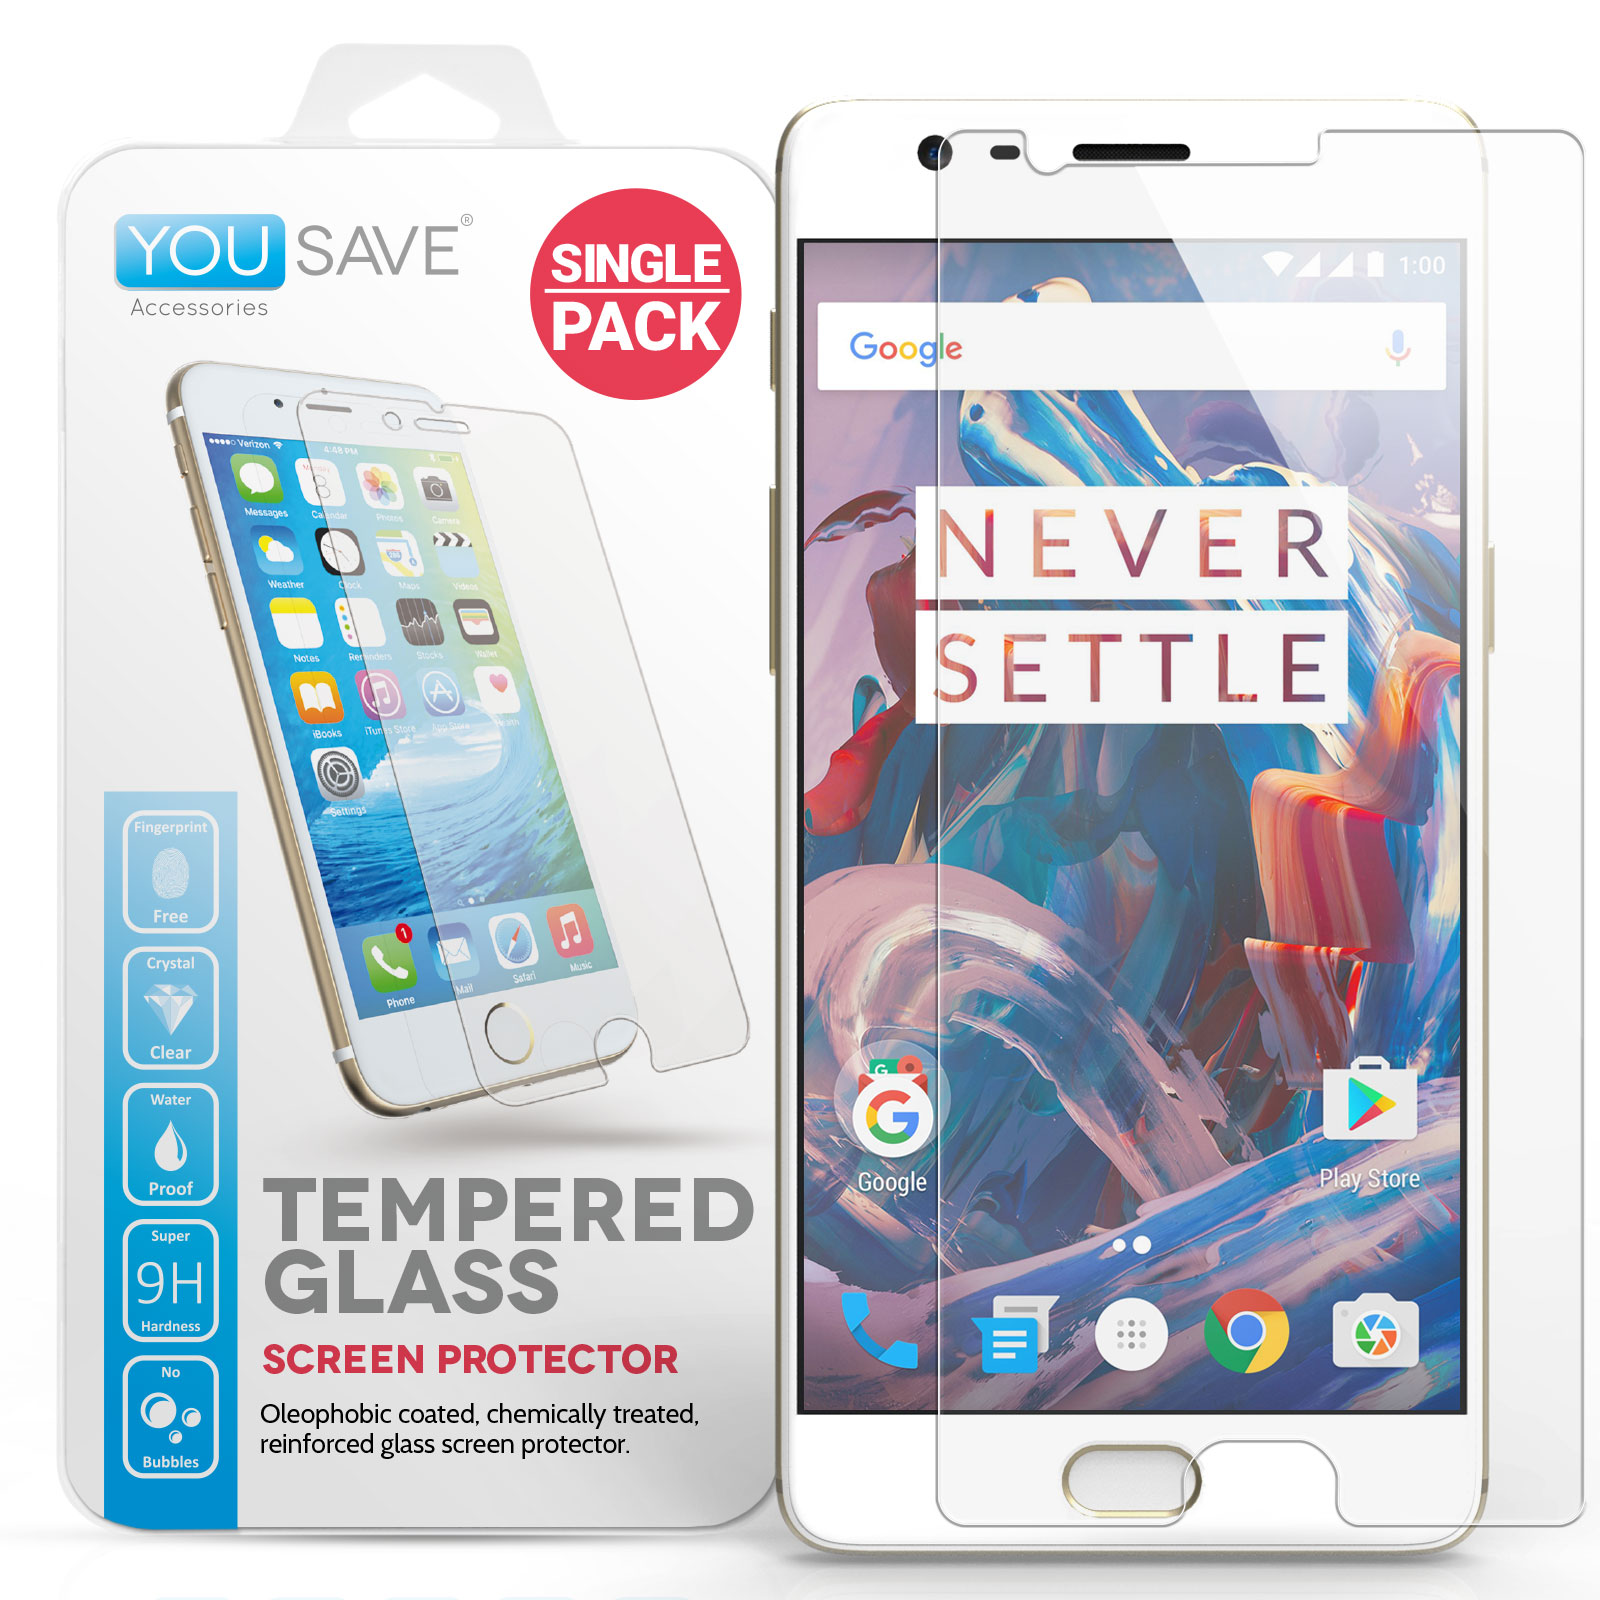 Yousave Accessories OnePlus Three Glass Screen Protector